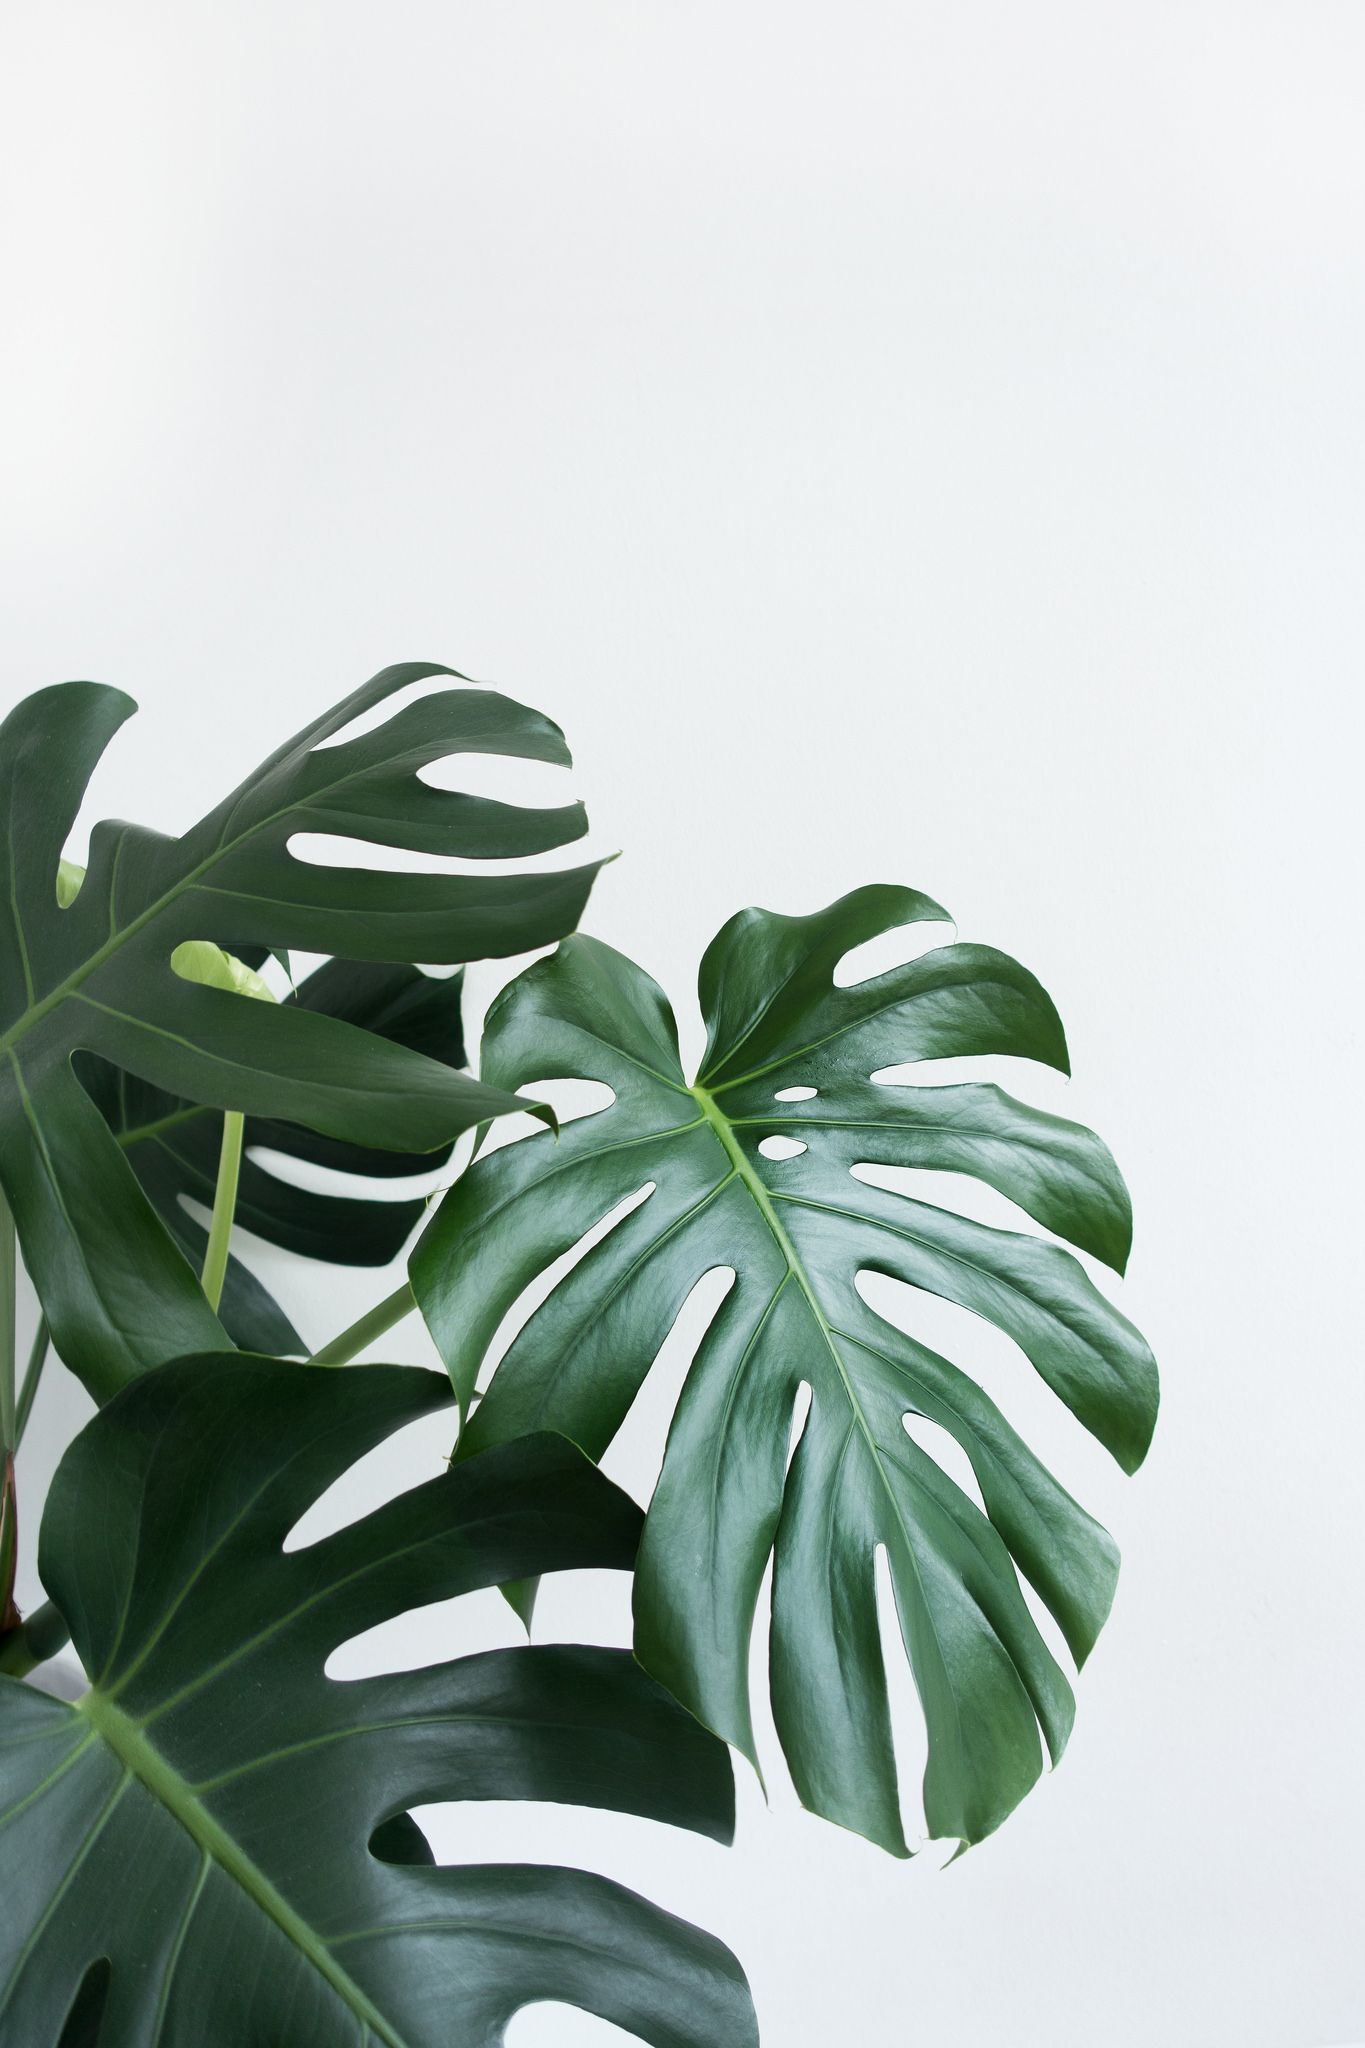 The Health Benefits Of Houseplants in 2019 | Wallpaper | Plant wallpaper, Wallpaper, Plants